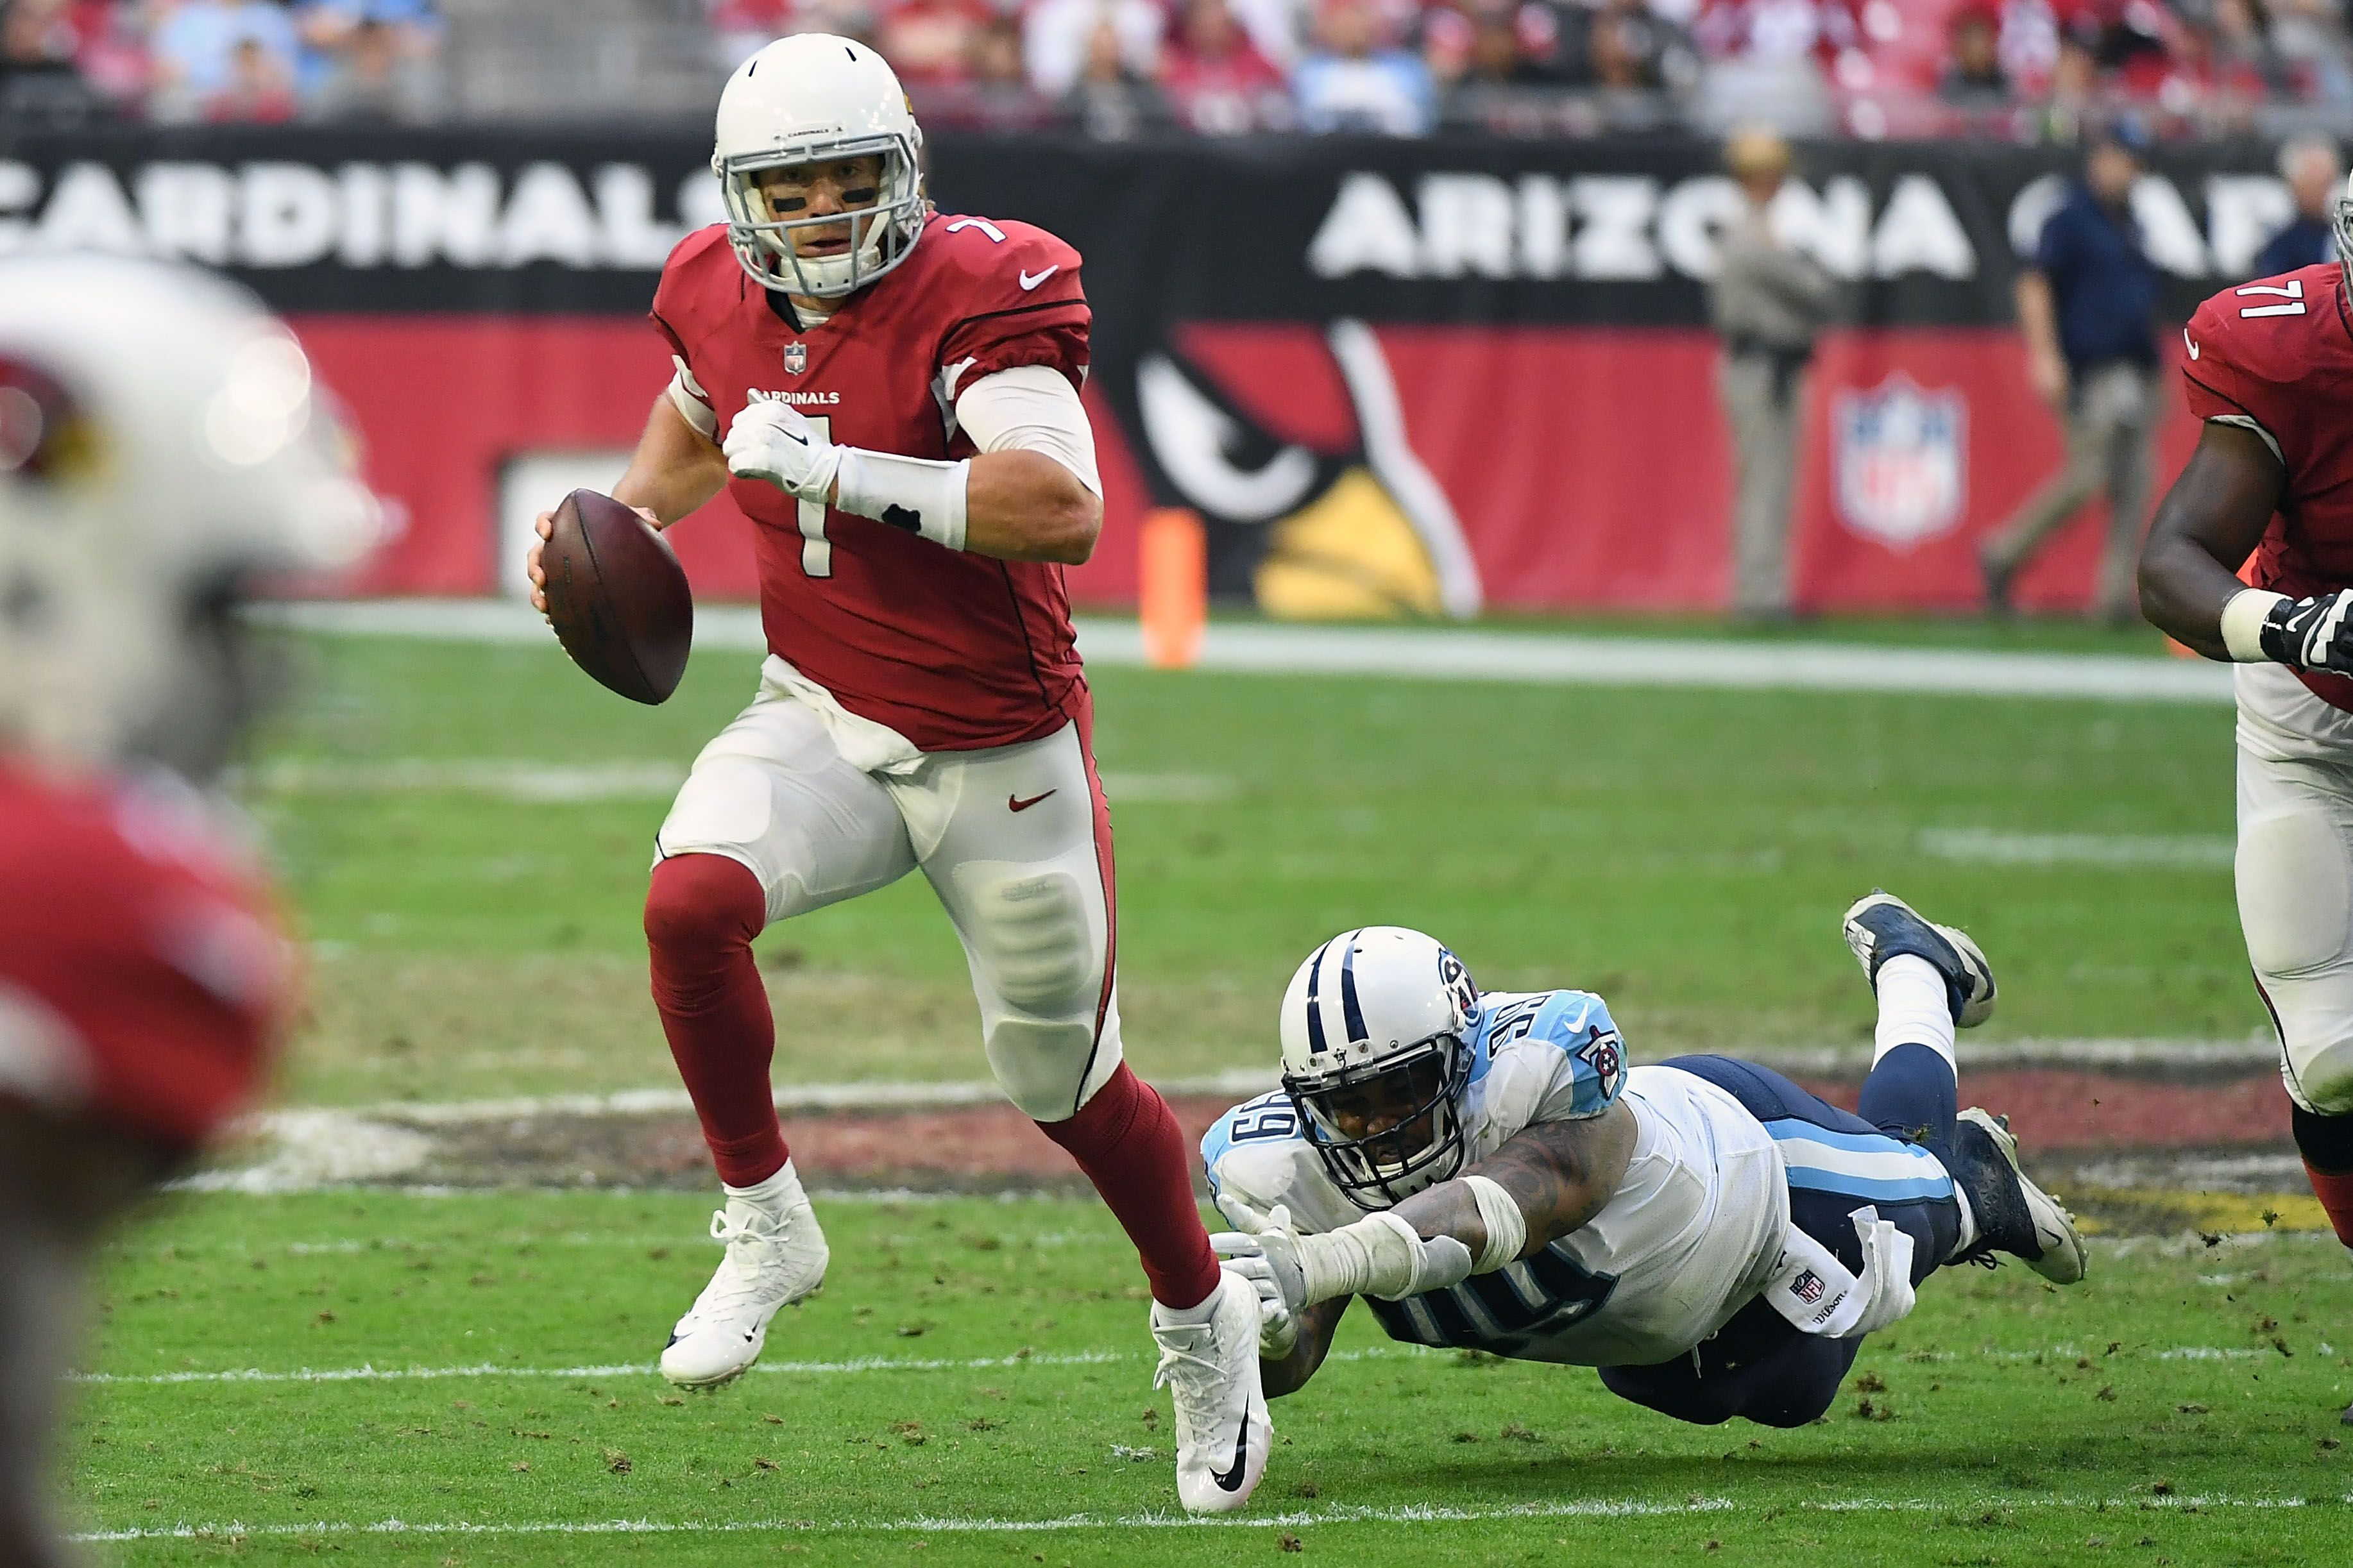 889820984-tennessee-titans-v-arizona-cardinals.jpg